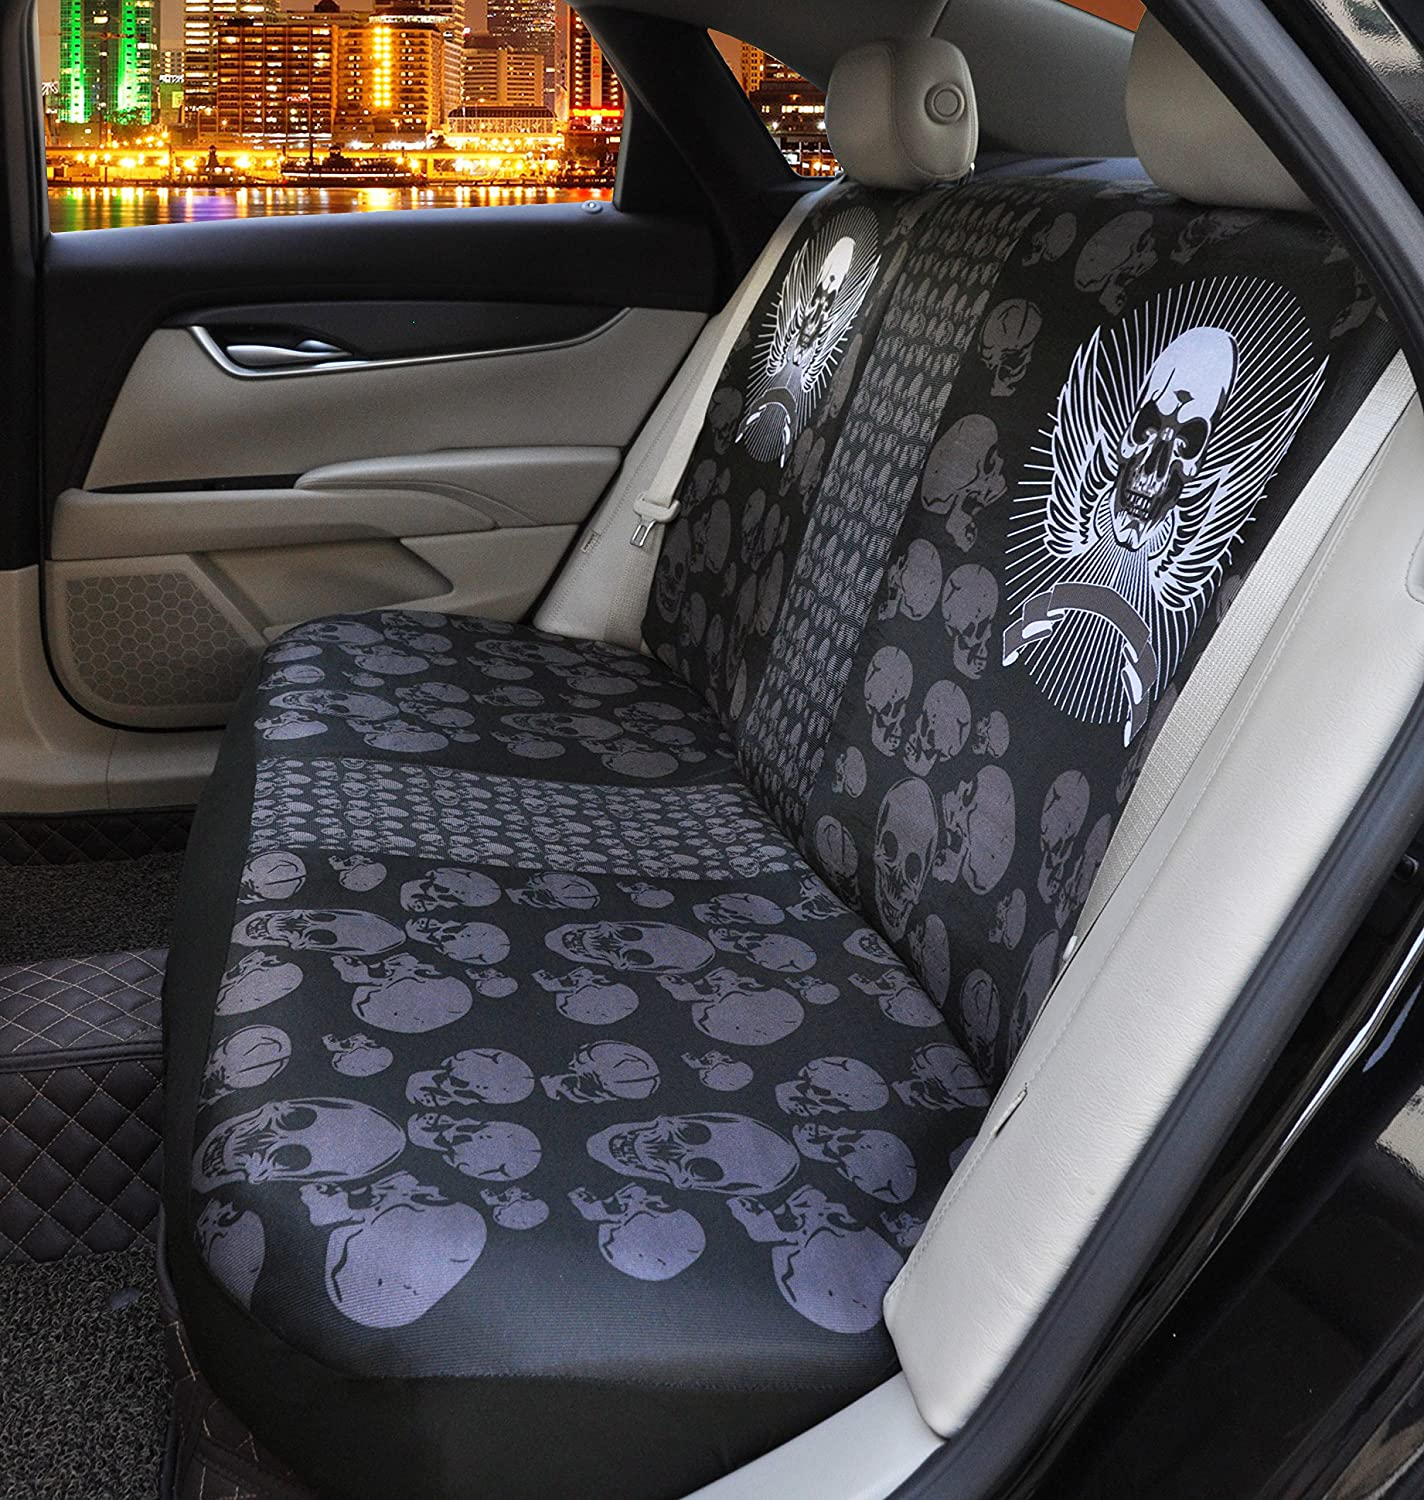 Steering Wheel Cover Deeprinter Floral Skull Front Car Seat Protector Car Seat Belt Covers Durable Car Protector Interior for Dog Pets Car Center Cover